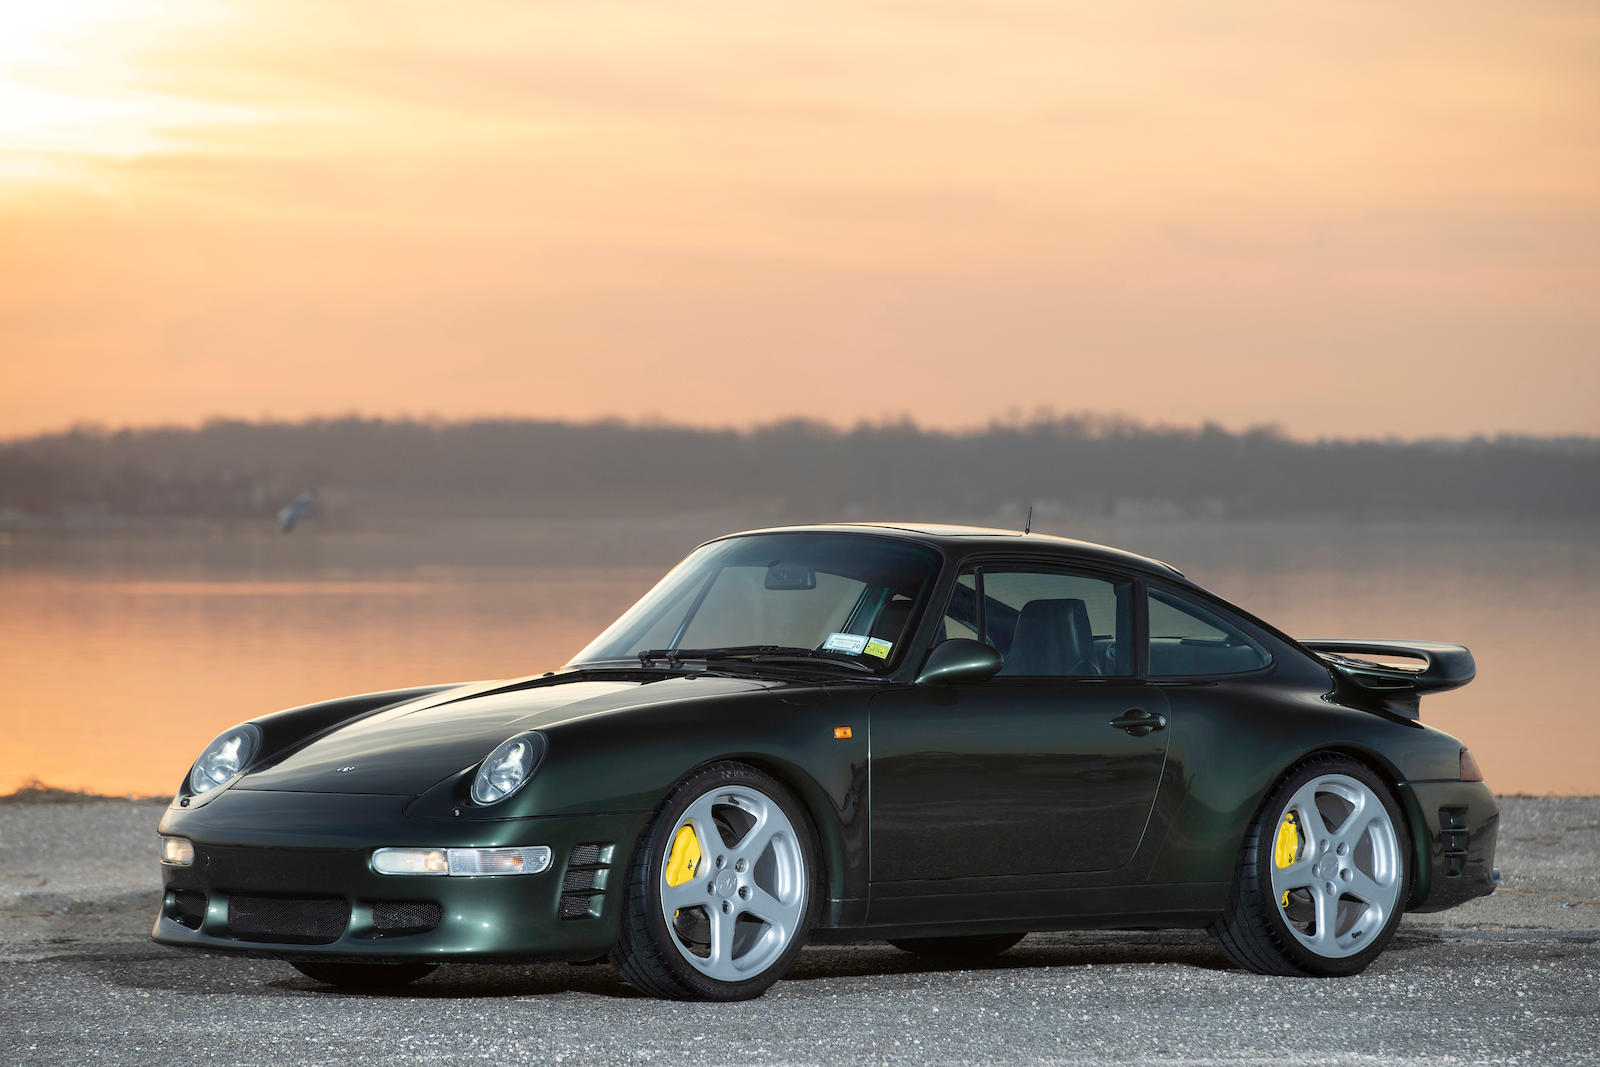 1998 RUF 911 Turbo R